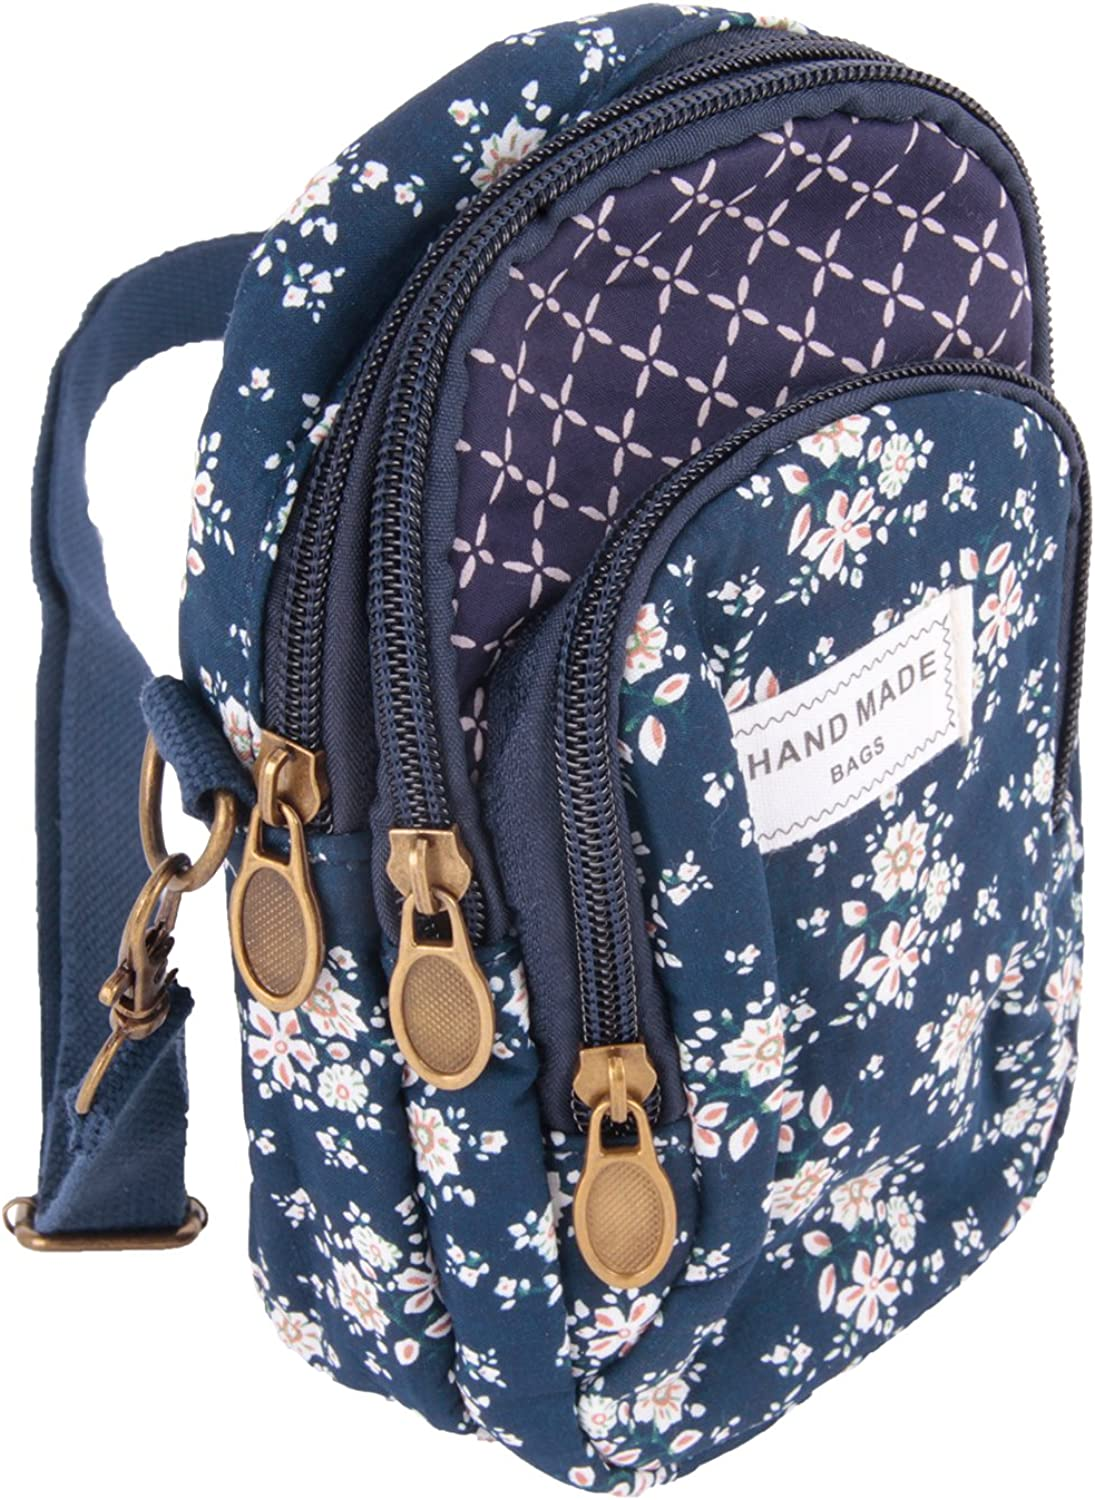 Floral Cotton Seasonal Wrap Introduction Small Crossbody Handbags Sales results No. 1 for Girls Women Multi Lay